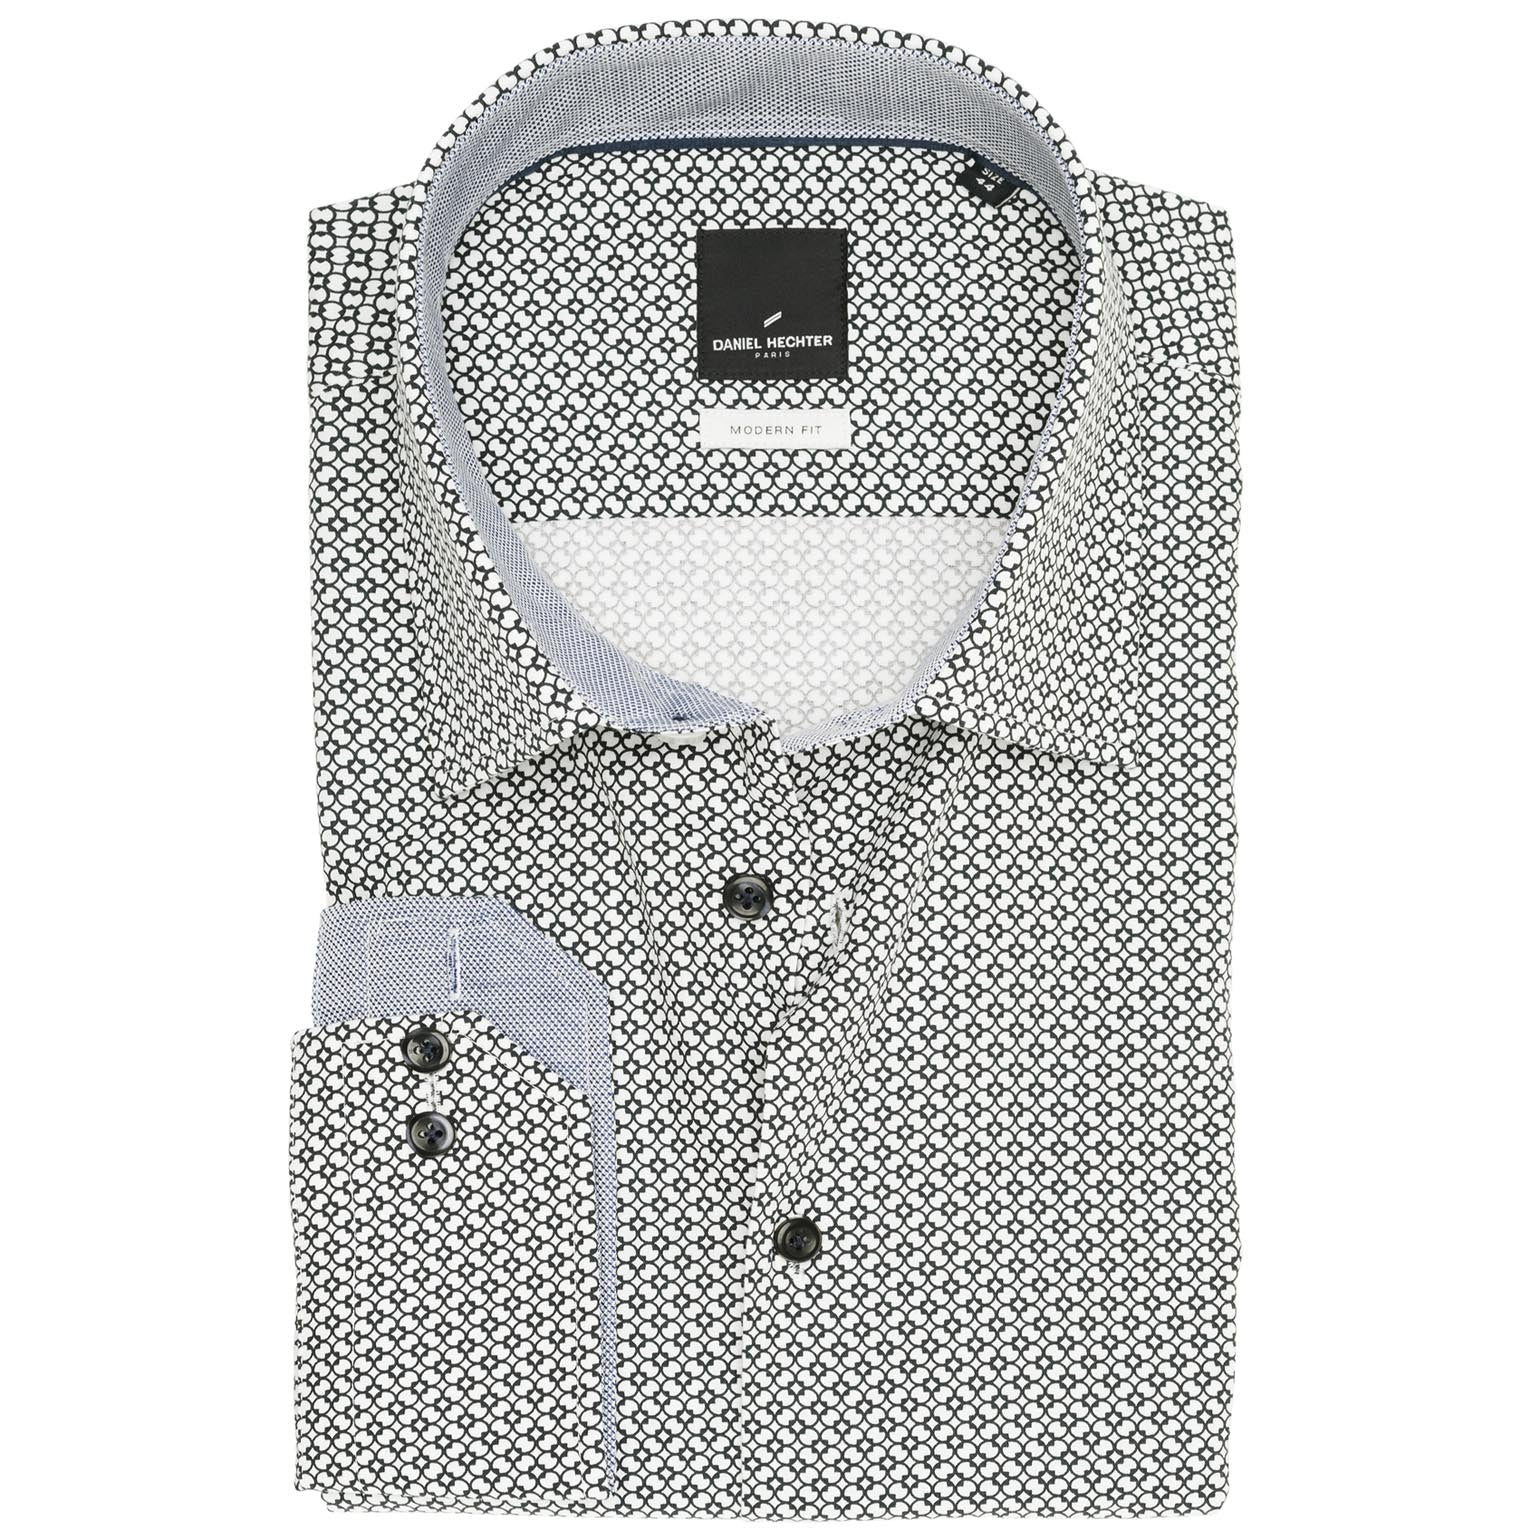 f942608161 DANIEL HECHTER Limited Edition Modern Fit Cosmo Fehér Fekete ...